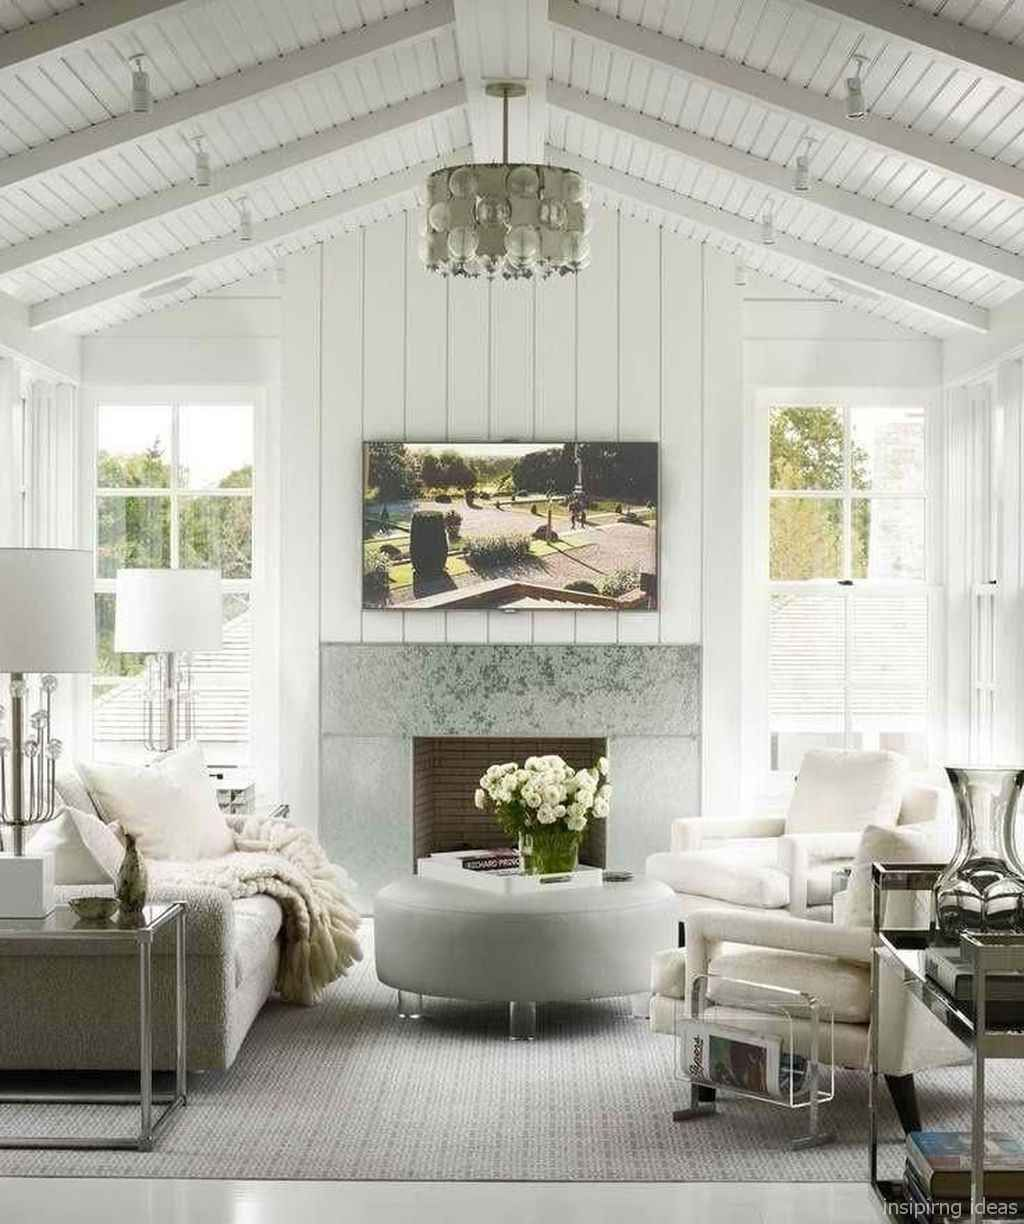 Cozy Modern Apartment Living Room Decorating Ideas On A Budget 36 Room A Holic Cottage Decor Living Room Modern Apartment Living Room Cabin Living Room